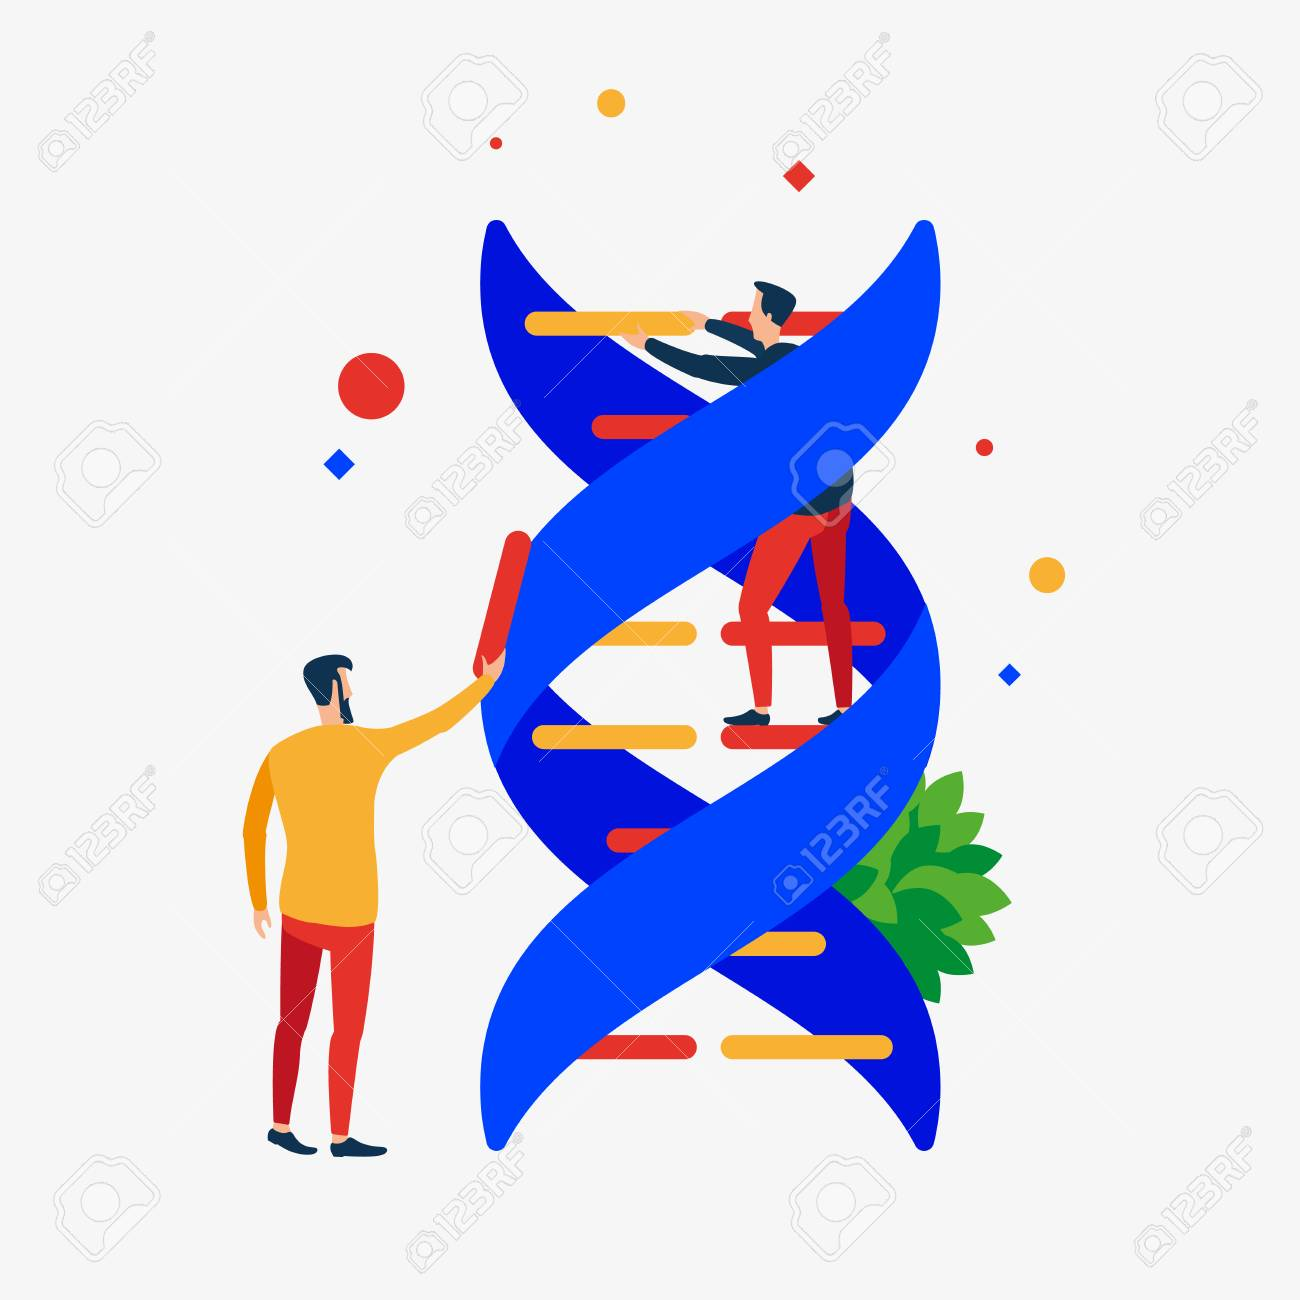 DNA correction. The repair process of the DNA helix. Vector illustration. Separate objects. - 102642121